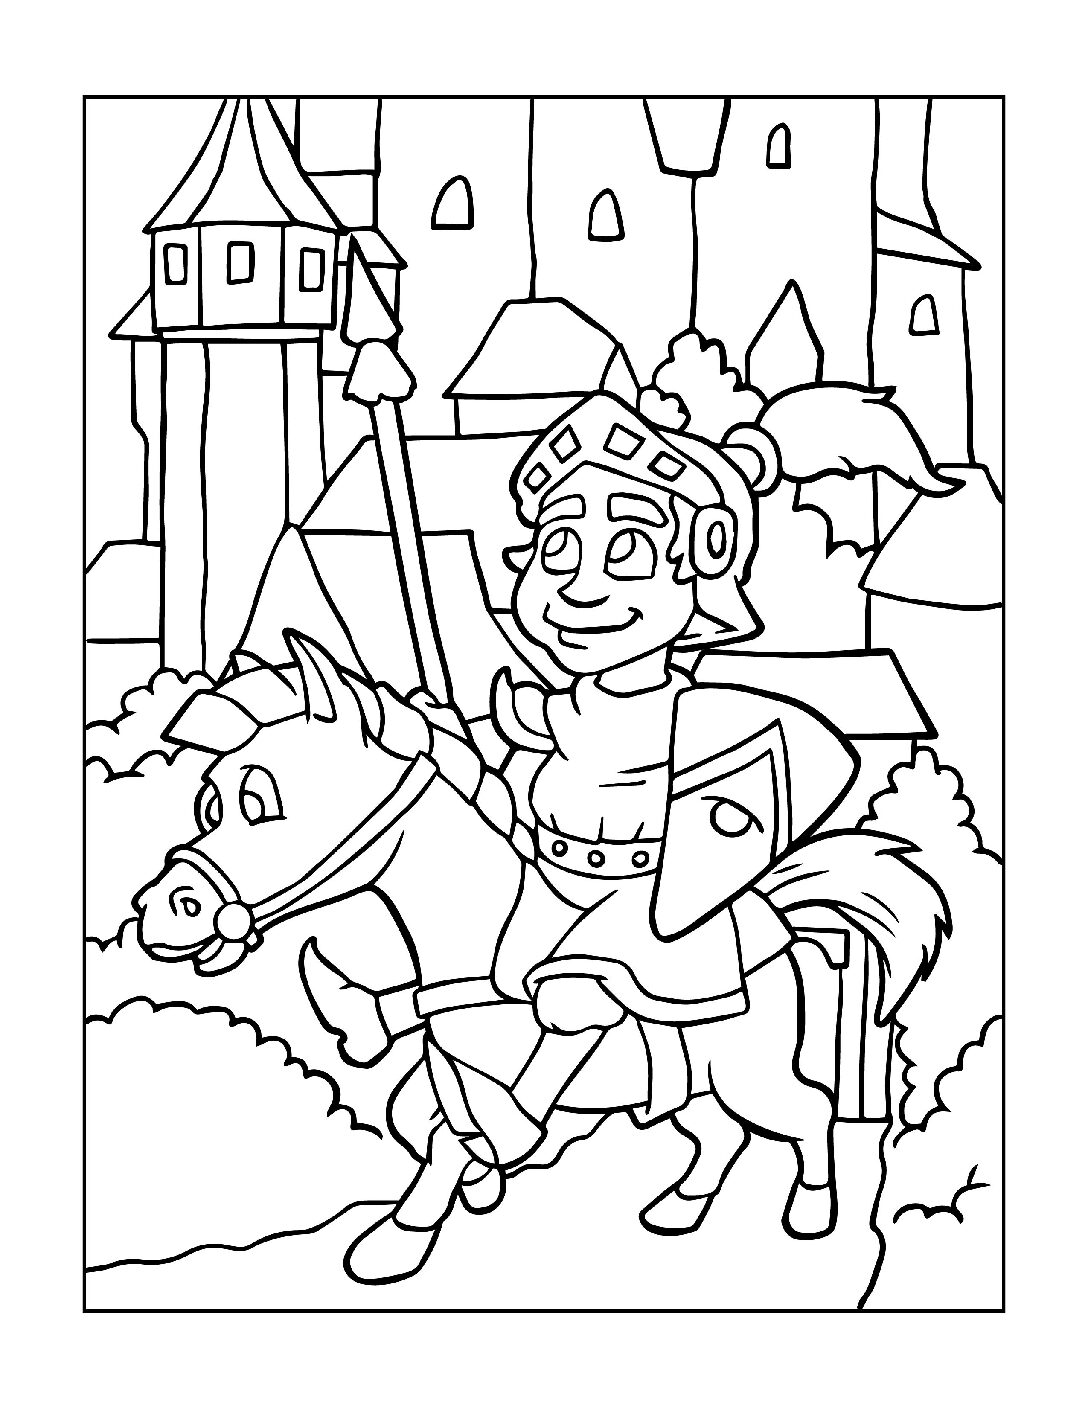 Coloring-Pages-Pirates-and-Knights-for-Boys-8-01-pdf Free Printable Pirates &  Knights Colouring Pages